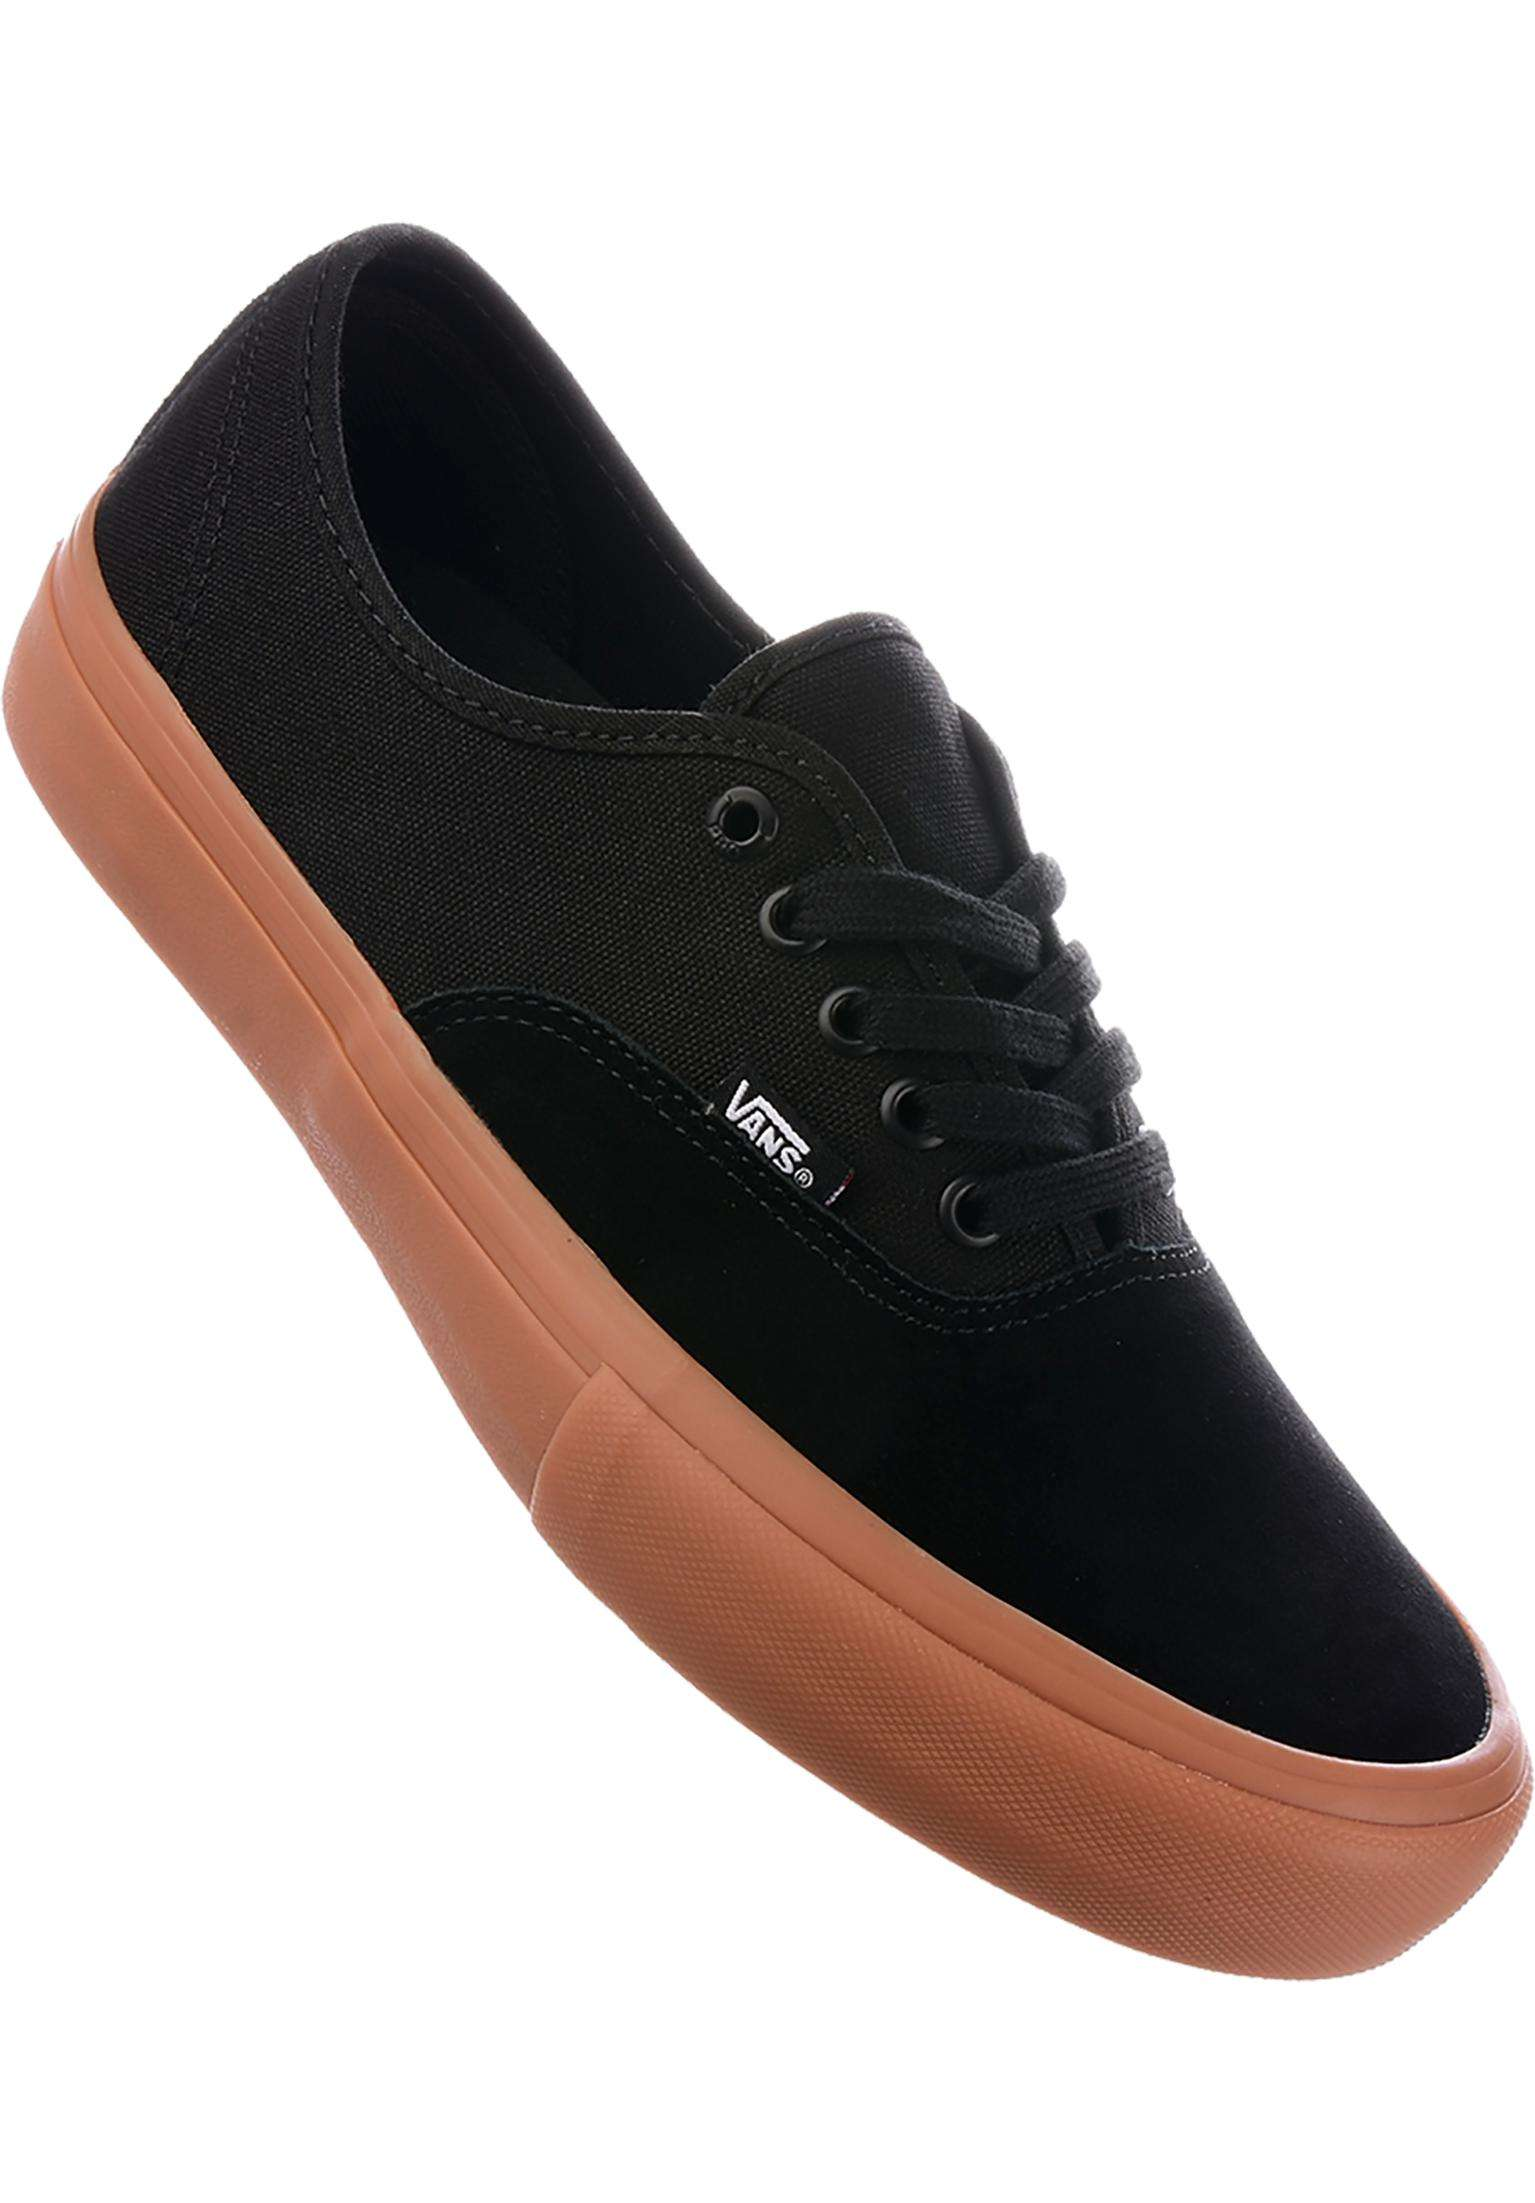 cdab543343 Authentic Pro Vans All Shoes in black-gum for Men